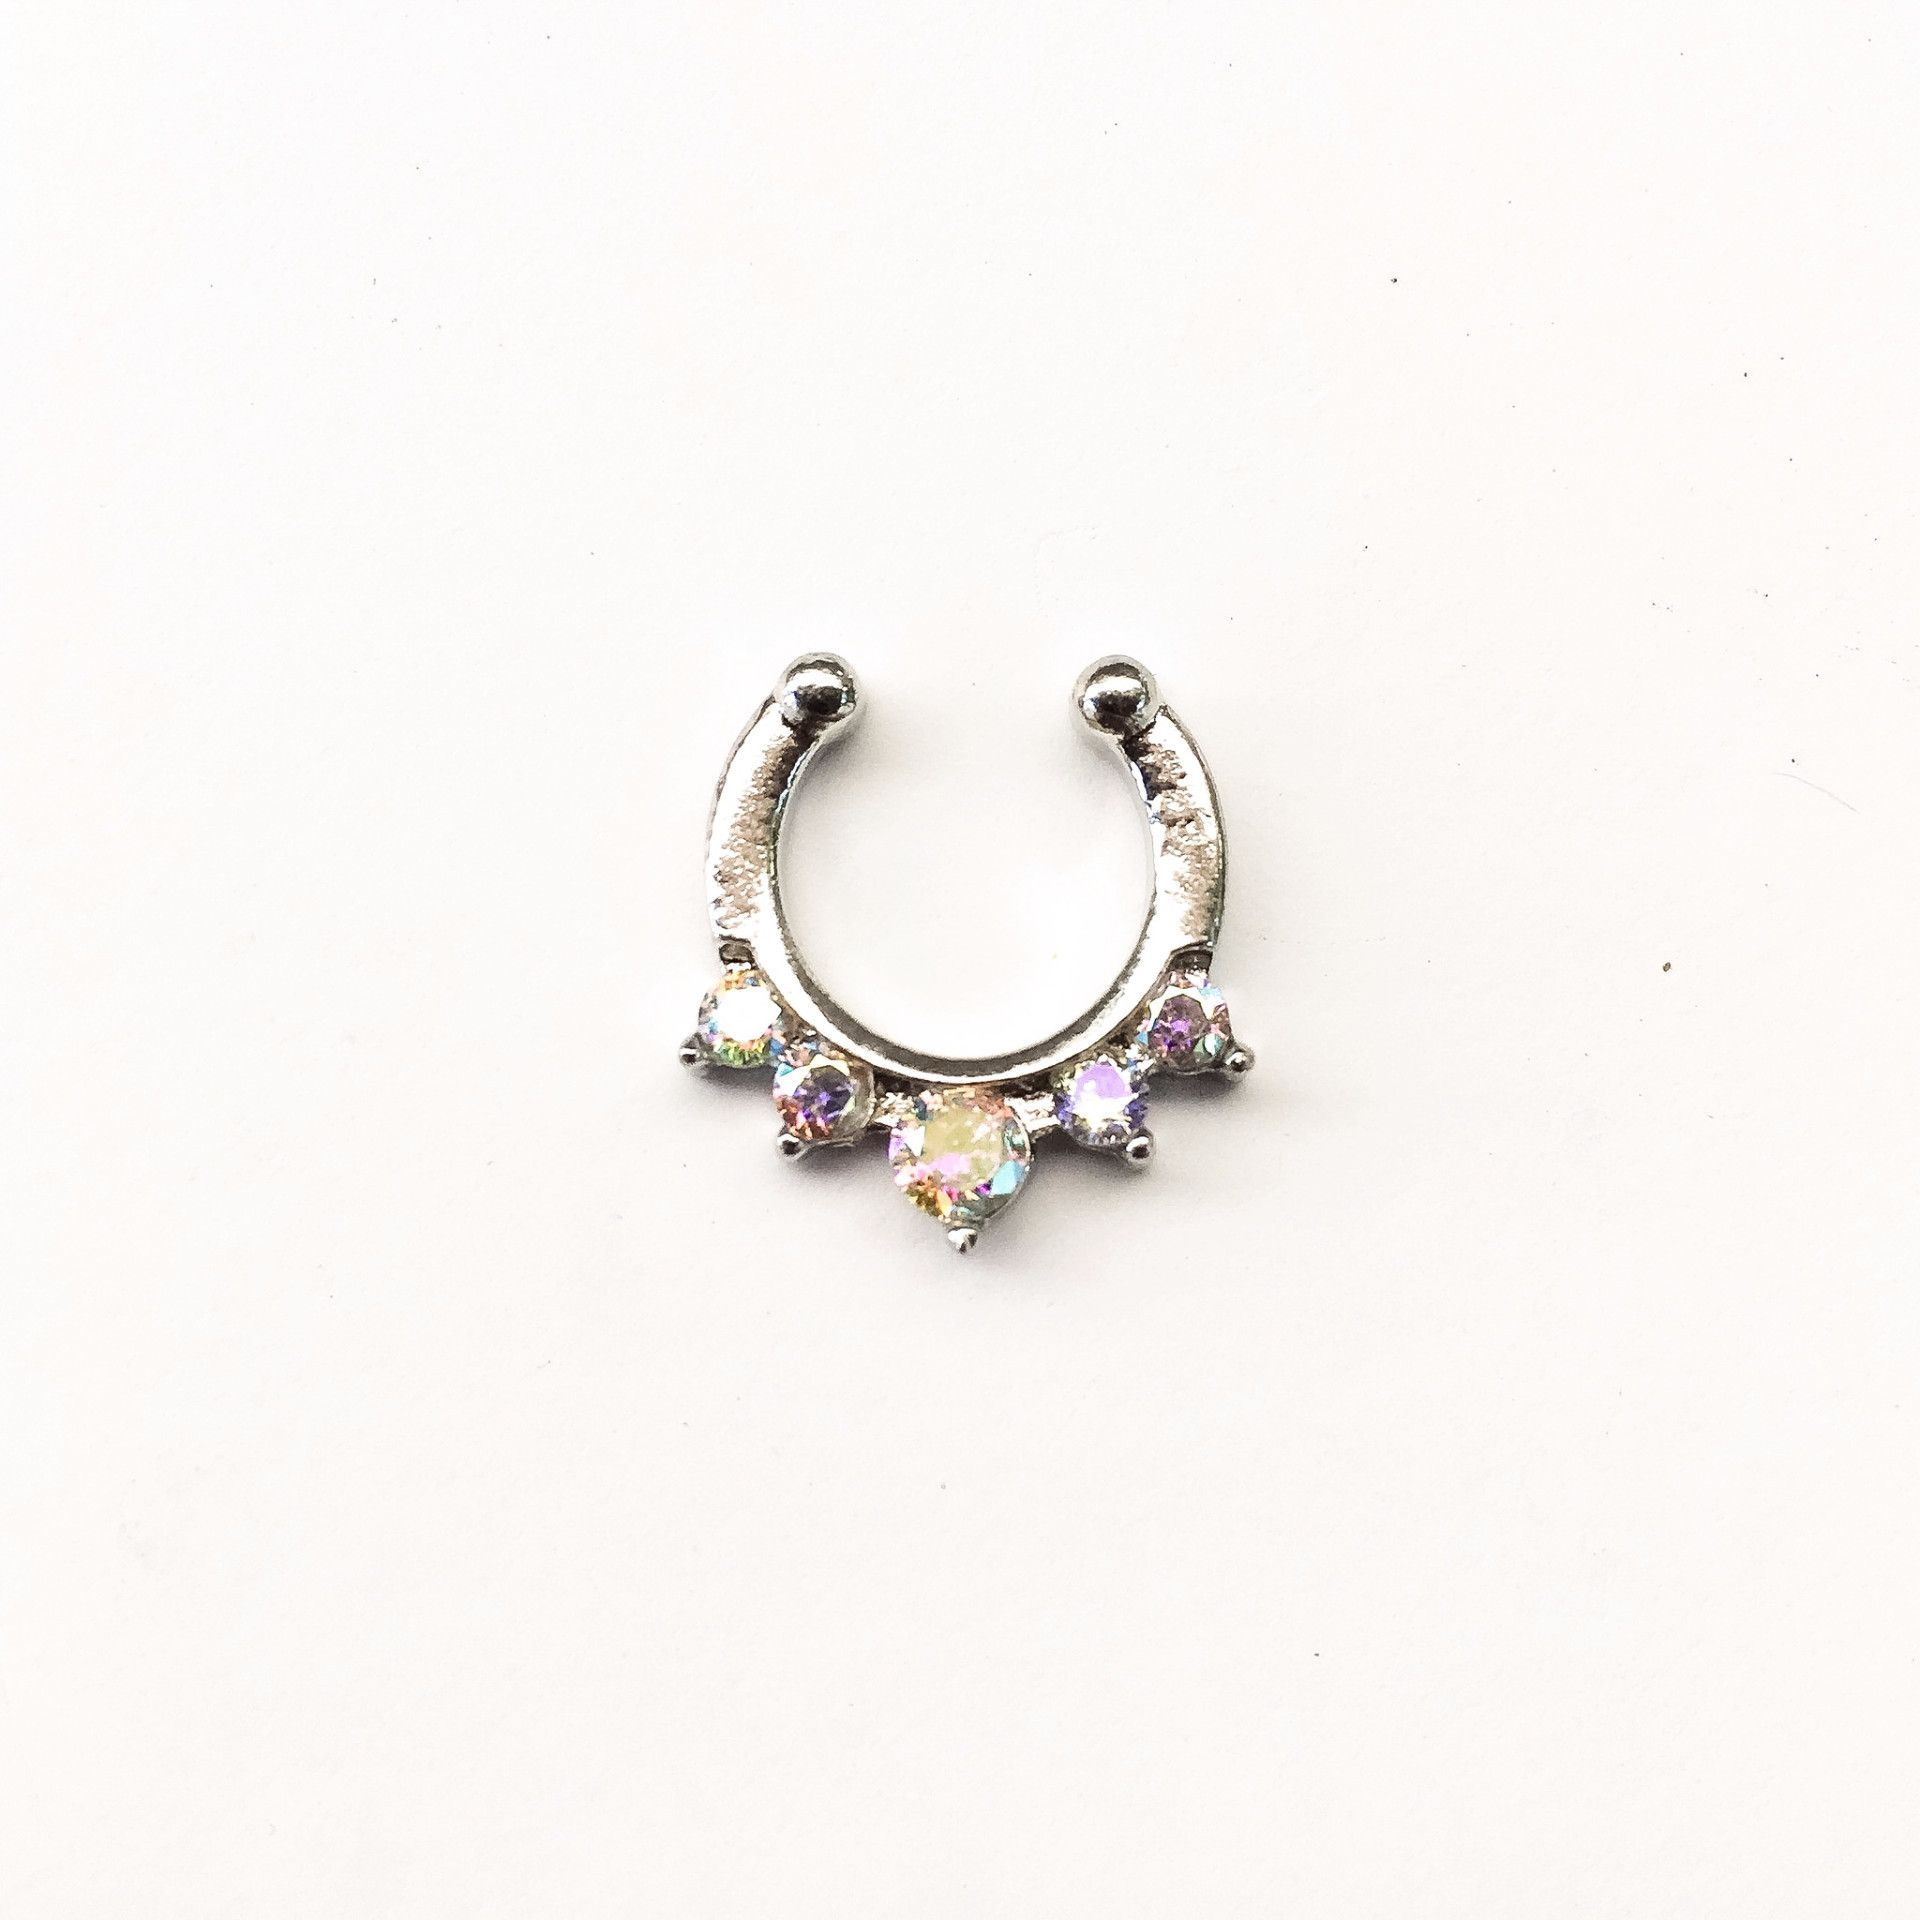 Piercing nose with ring  Faux Septum Rings  Faux septum ring Septum and Ring